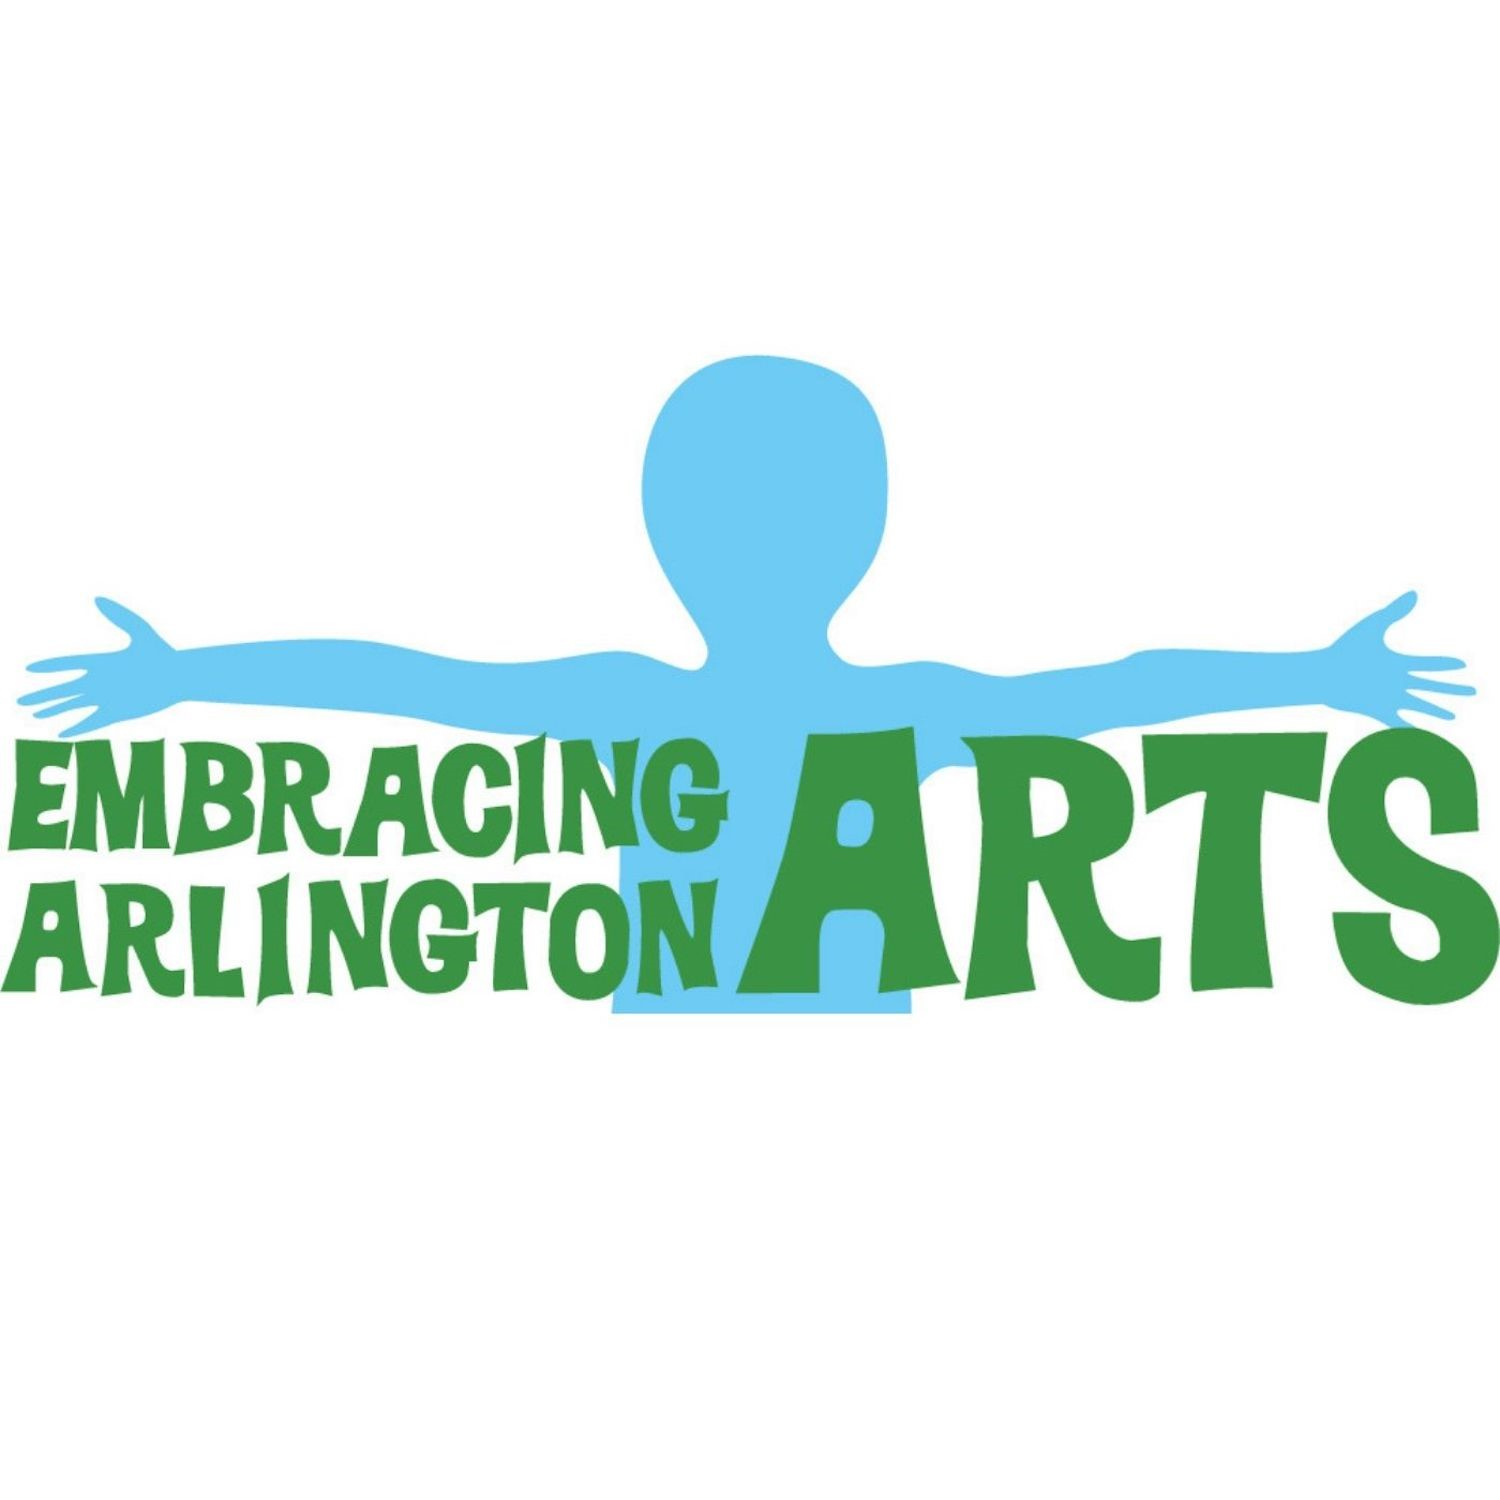 Virginia Humanities and Theatre Merge to Change the Narrative on Racism show art